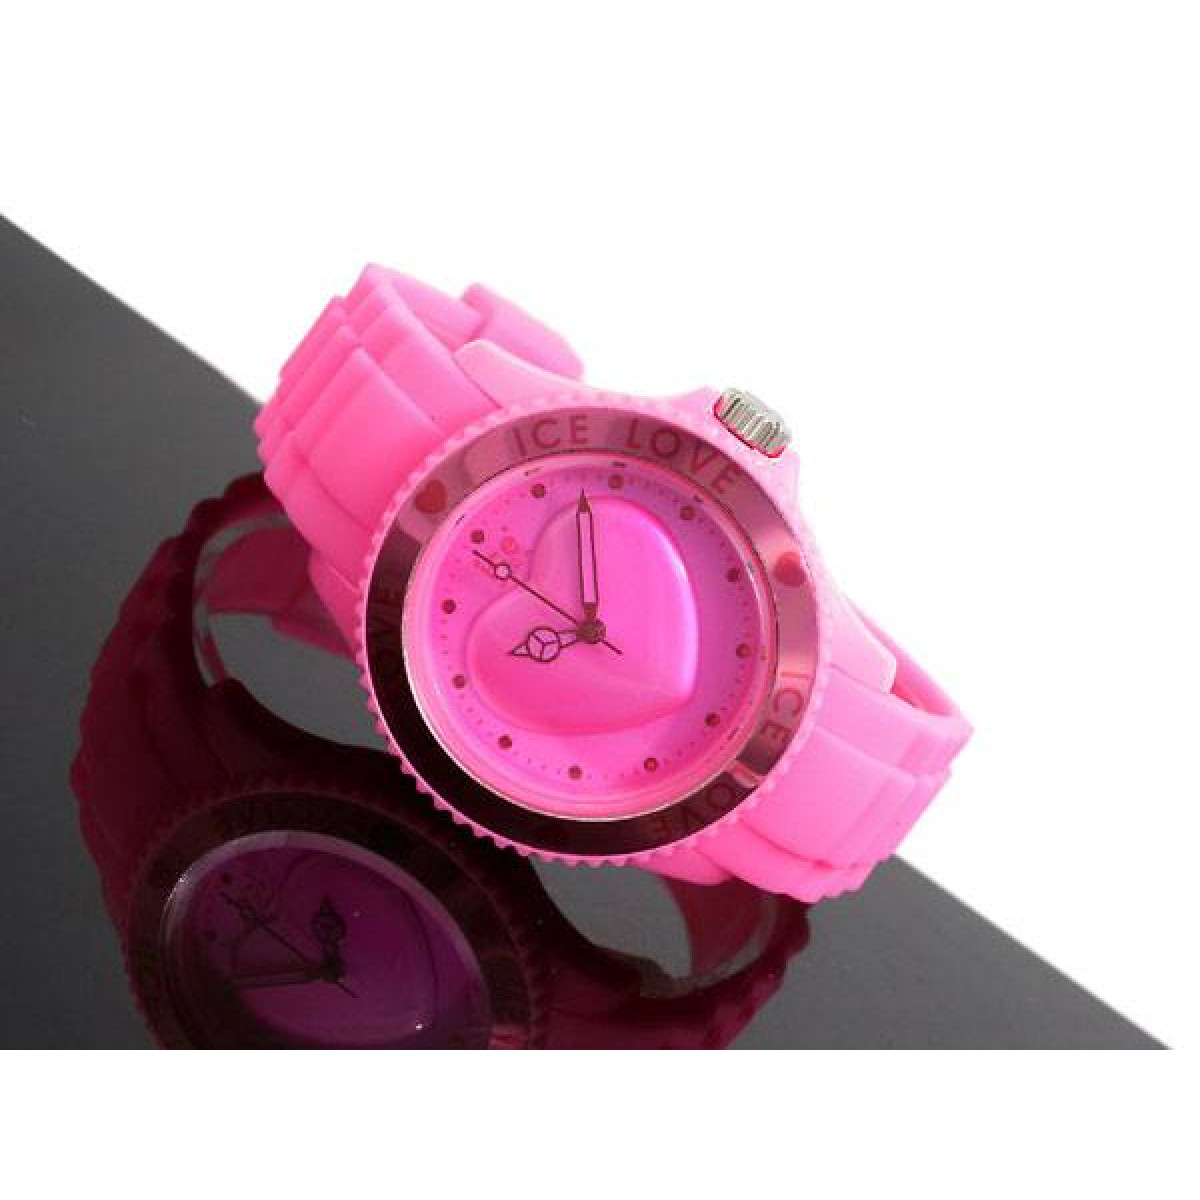 Часовник Ice-Watch LO.PK.U.S.10 Unisex